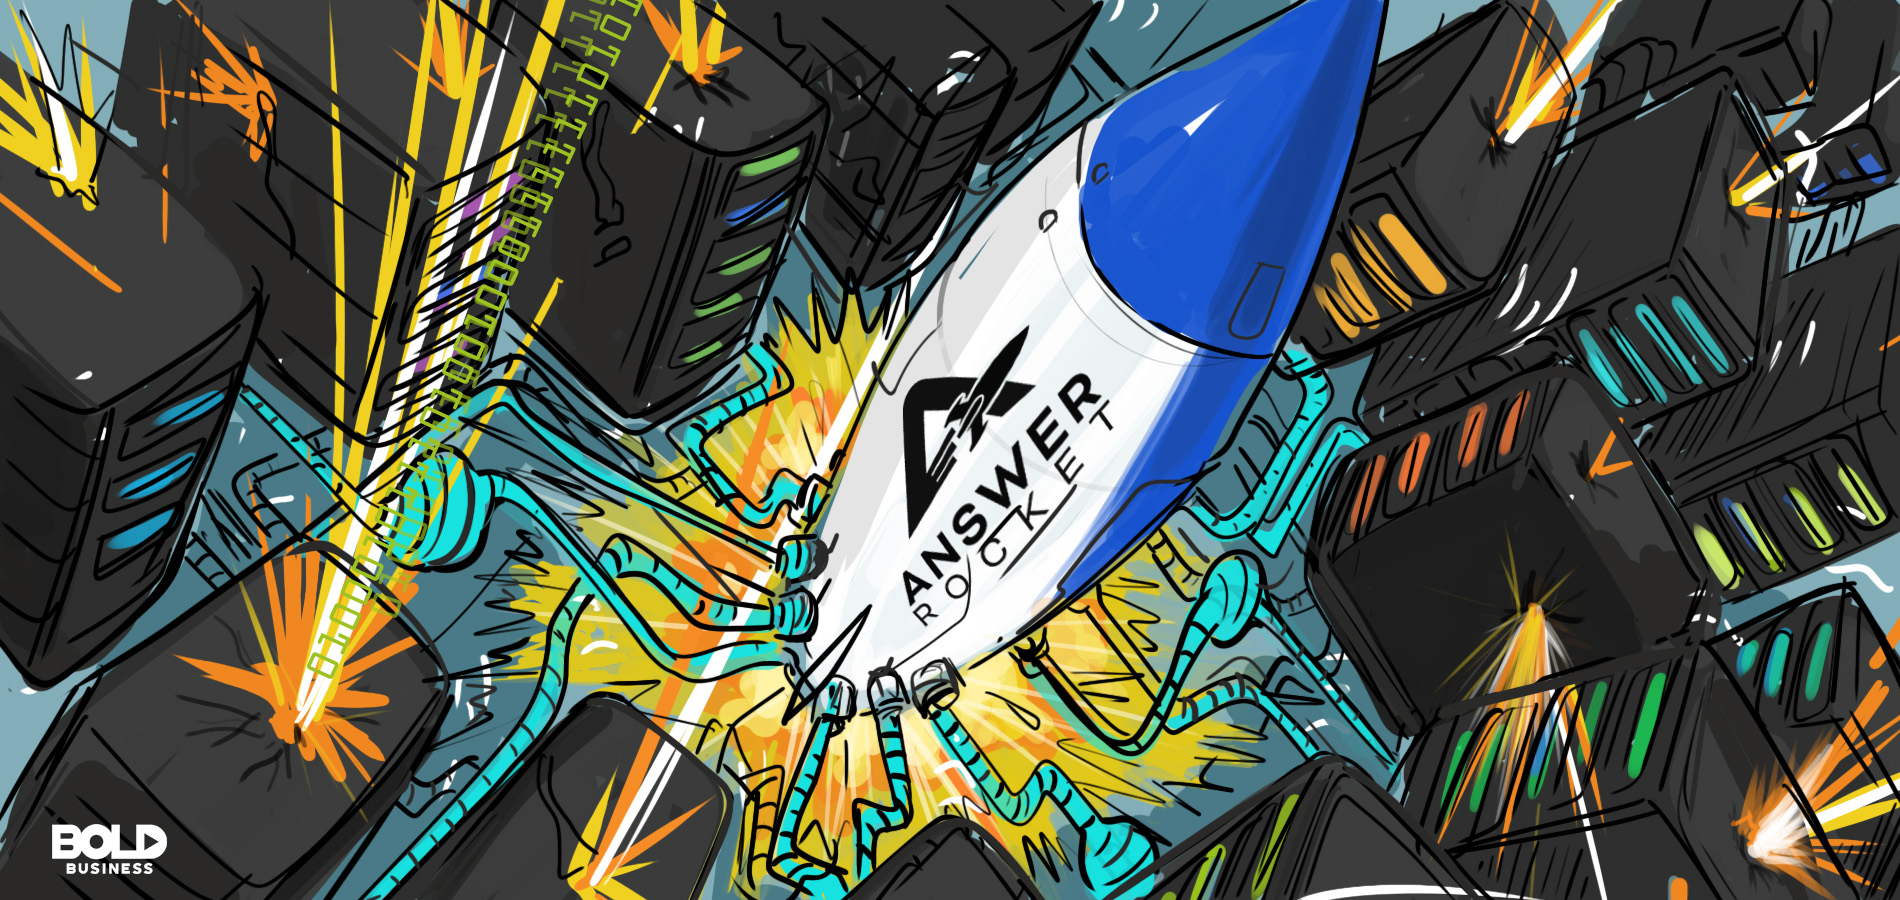 cartoon of an actual rocket (that symbolizes AnswerRocket) with wires connected to several box-like machines that are responsible for processing data analytics and dealing with data overload